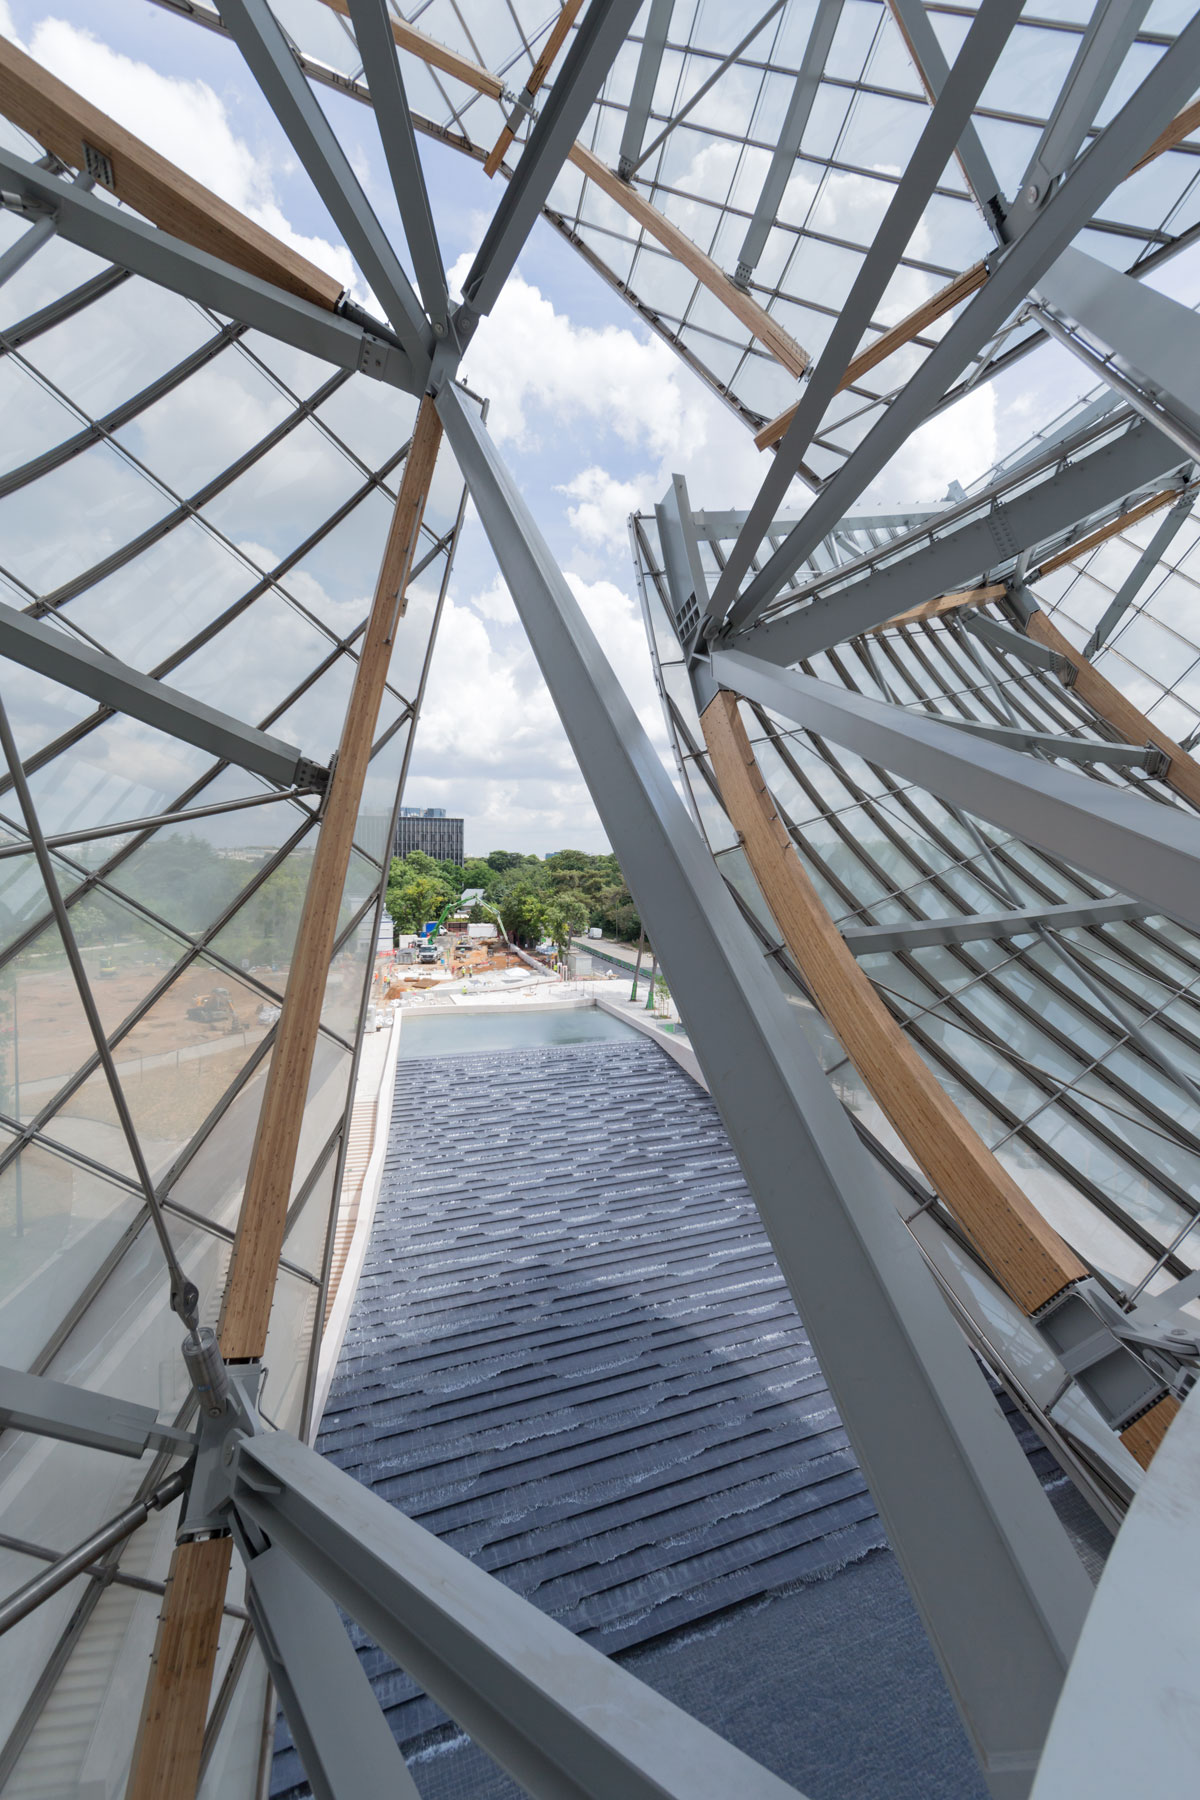 Frank gehry 39 s epic louis vuitton foundation opens next week - Frank gehry louis vuitton ...